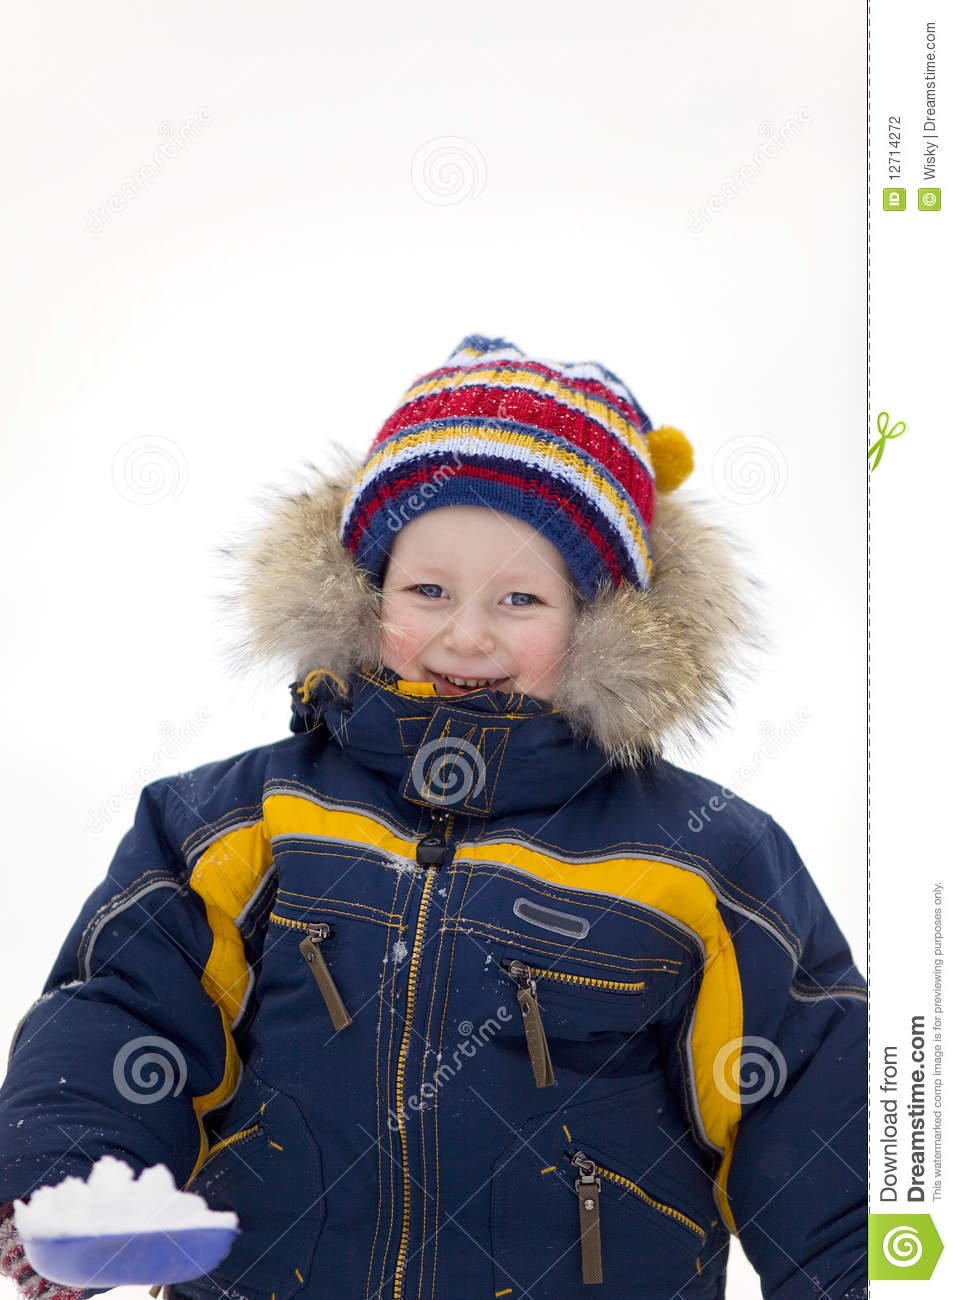 Shocked Child Pictures, Images and Stock Photos - iStock